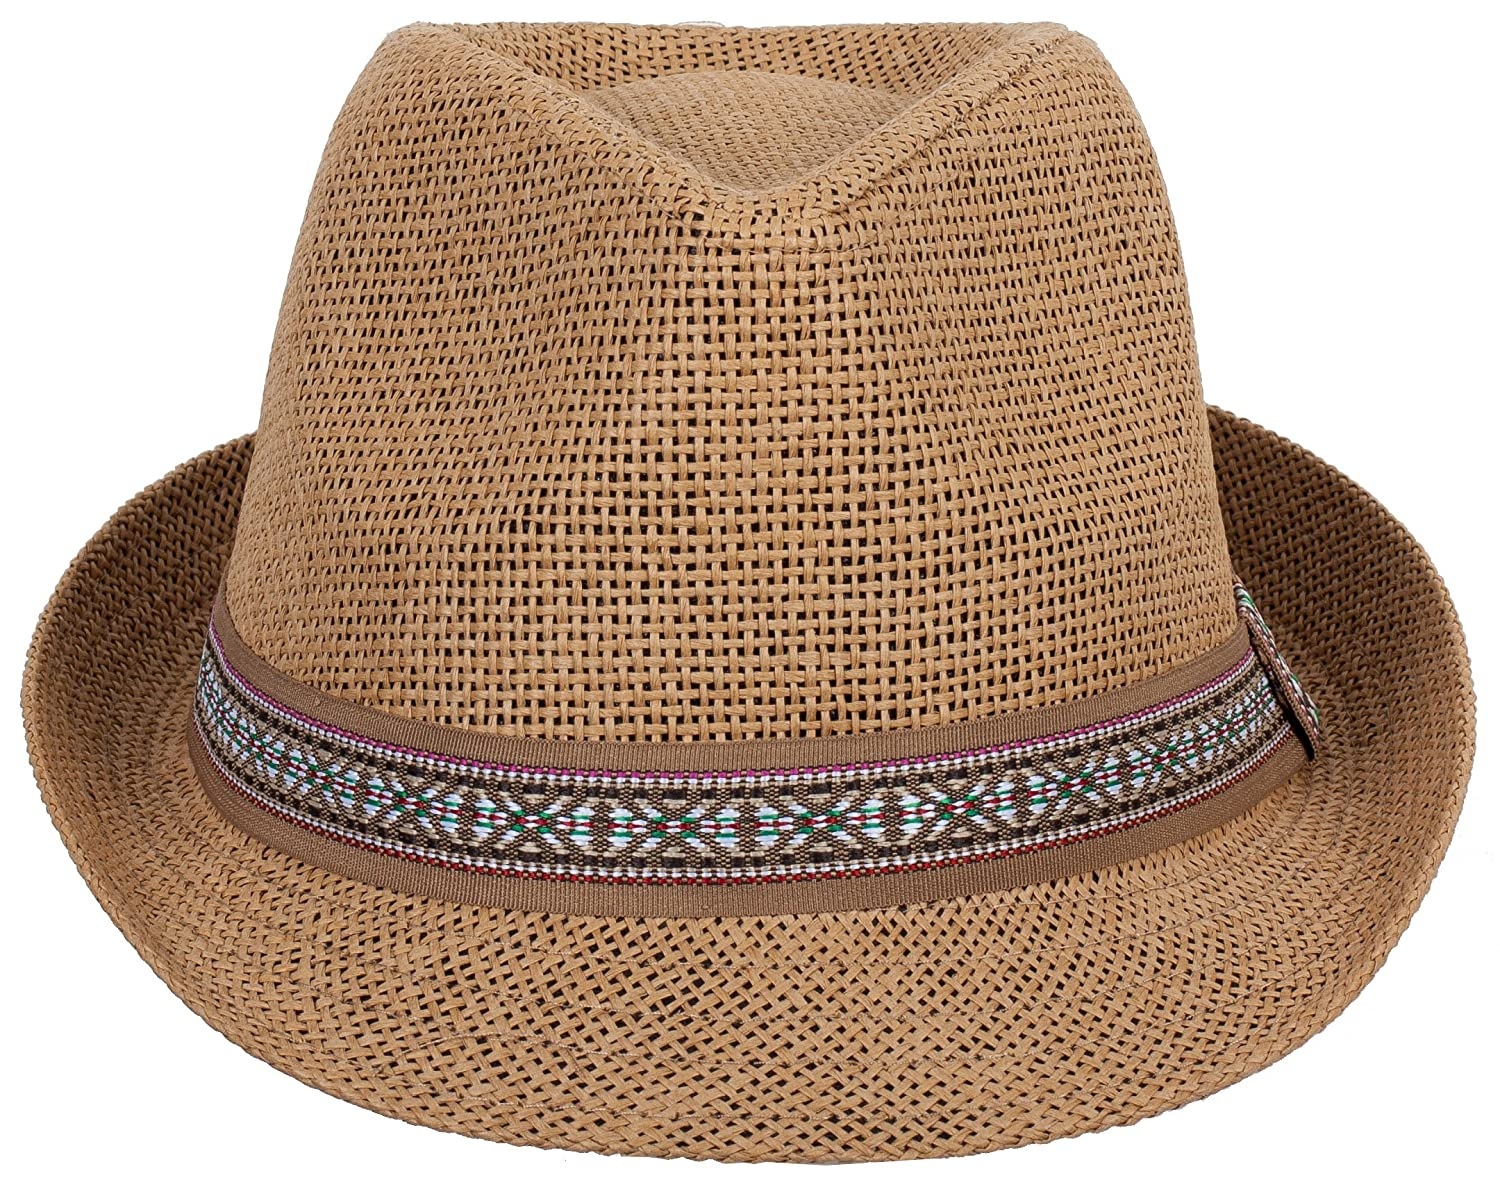 DRY77 Straw Light Fedora Hat with Aztec Pattern Brand 2d33eeb1e92